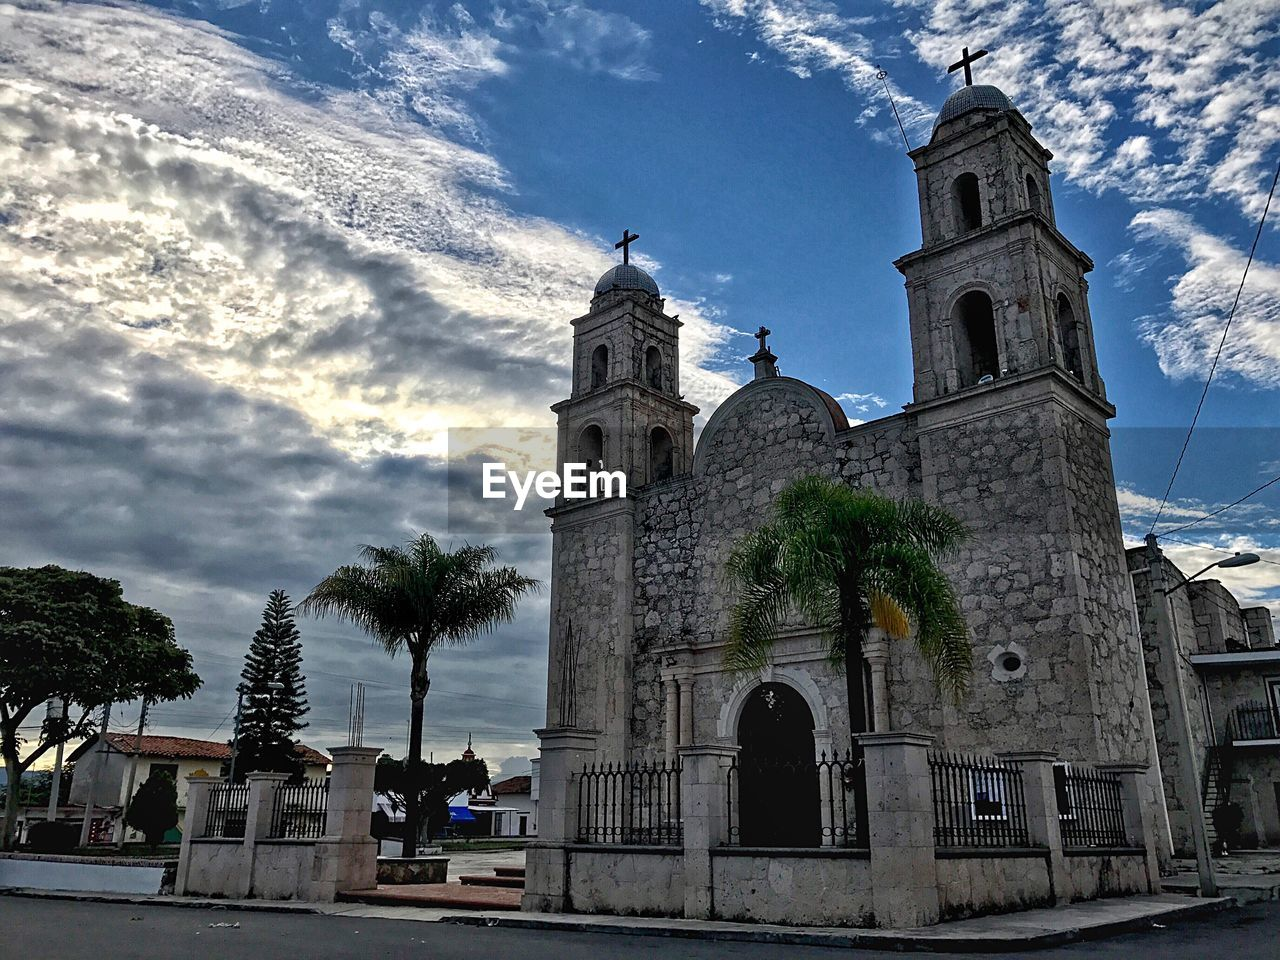 religion, place of worship, spirituality, architecture, building exterior, built structure, sky, cloud - sky, cross, bell tower, day, outdoors, tree, low angle view, no people, travel destinations, sunlight